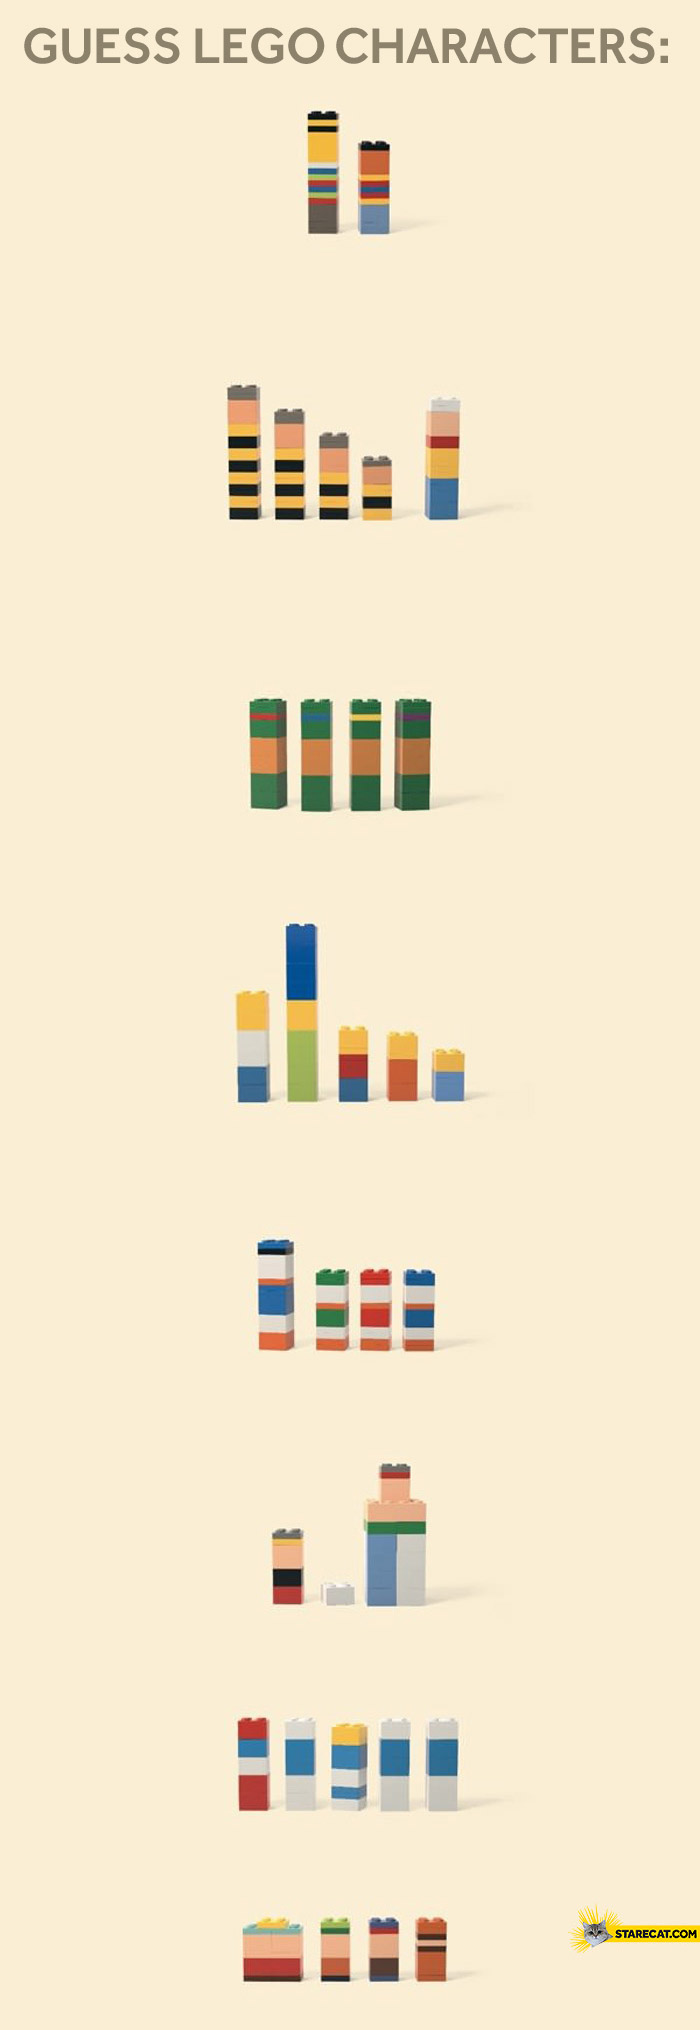 Guess LEGO characters